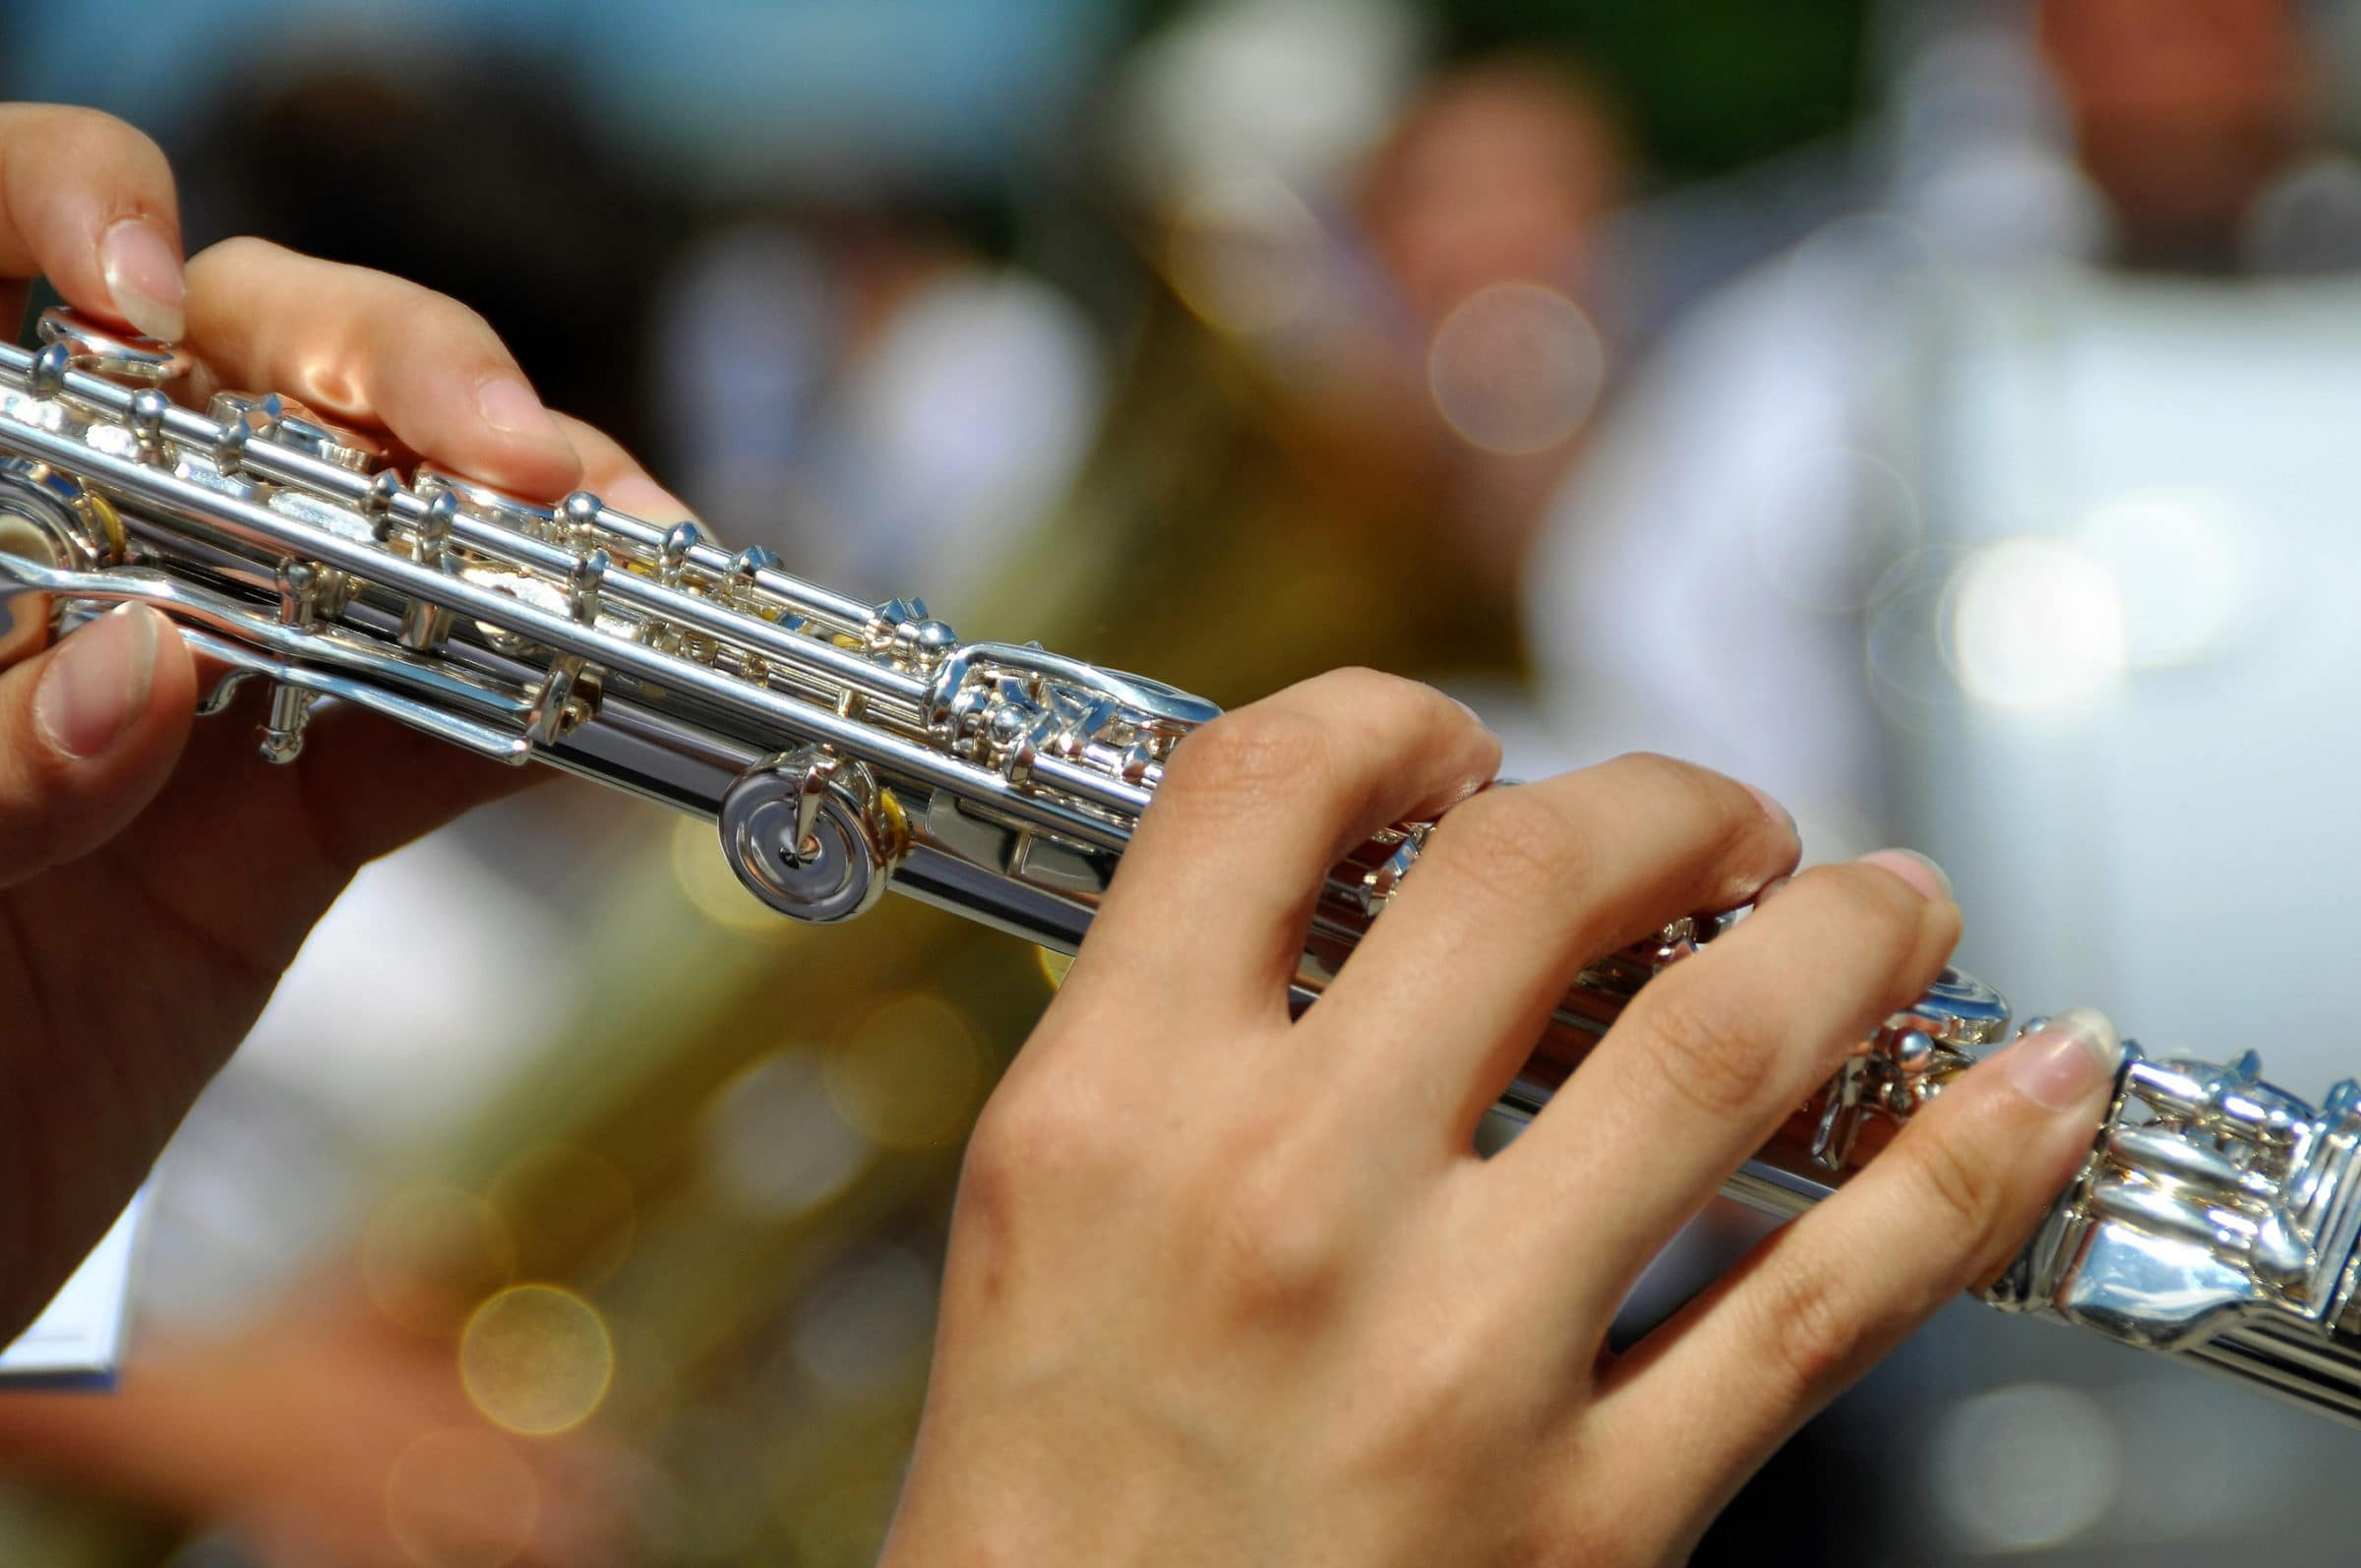 Hands playing flute